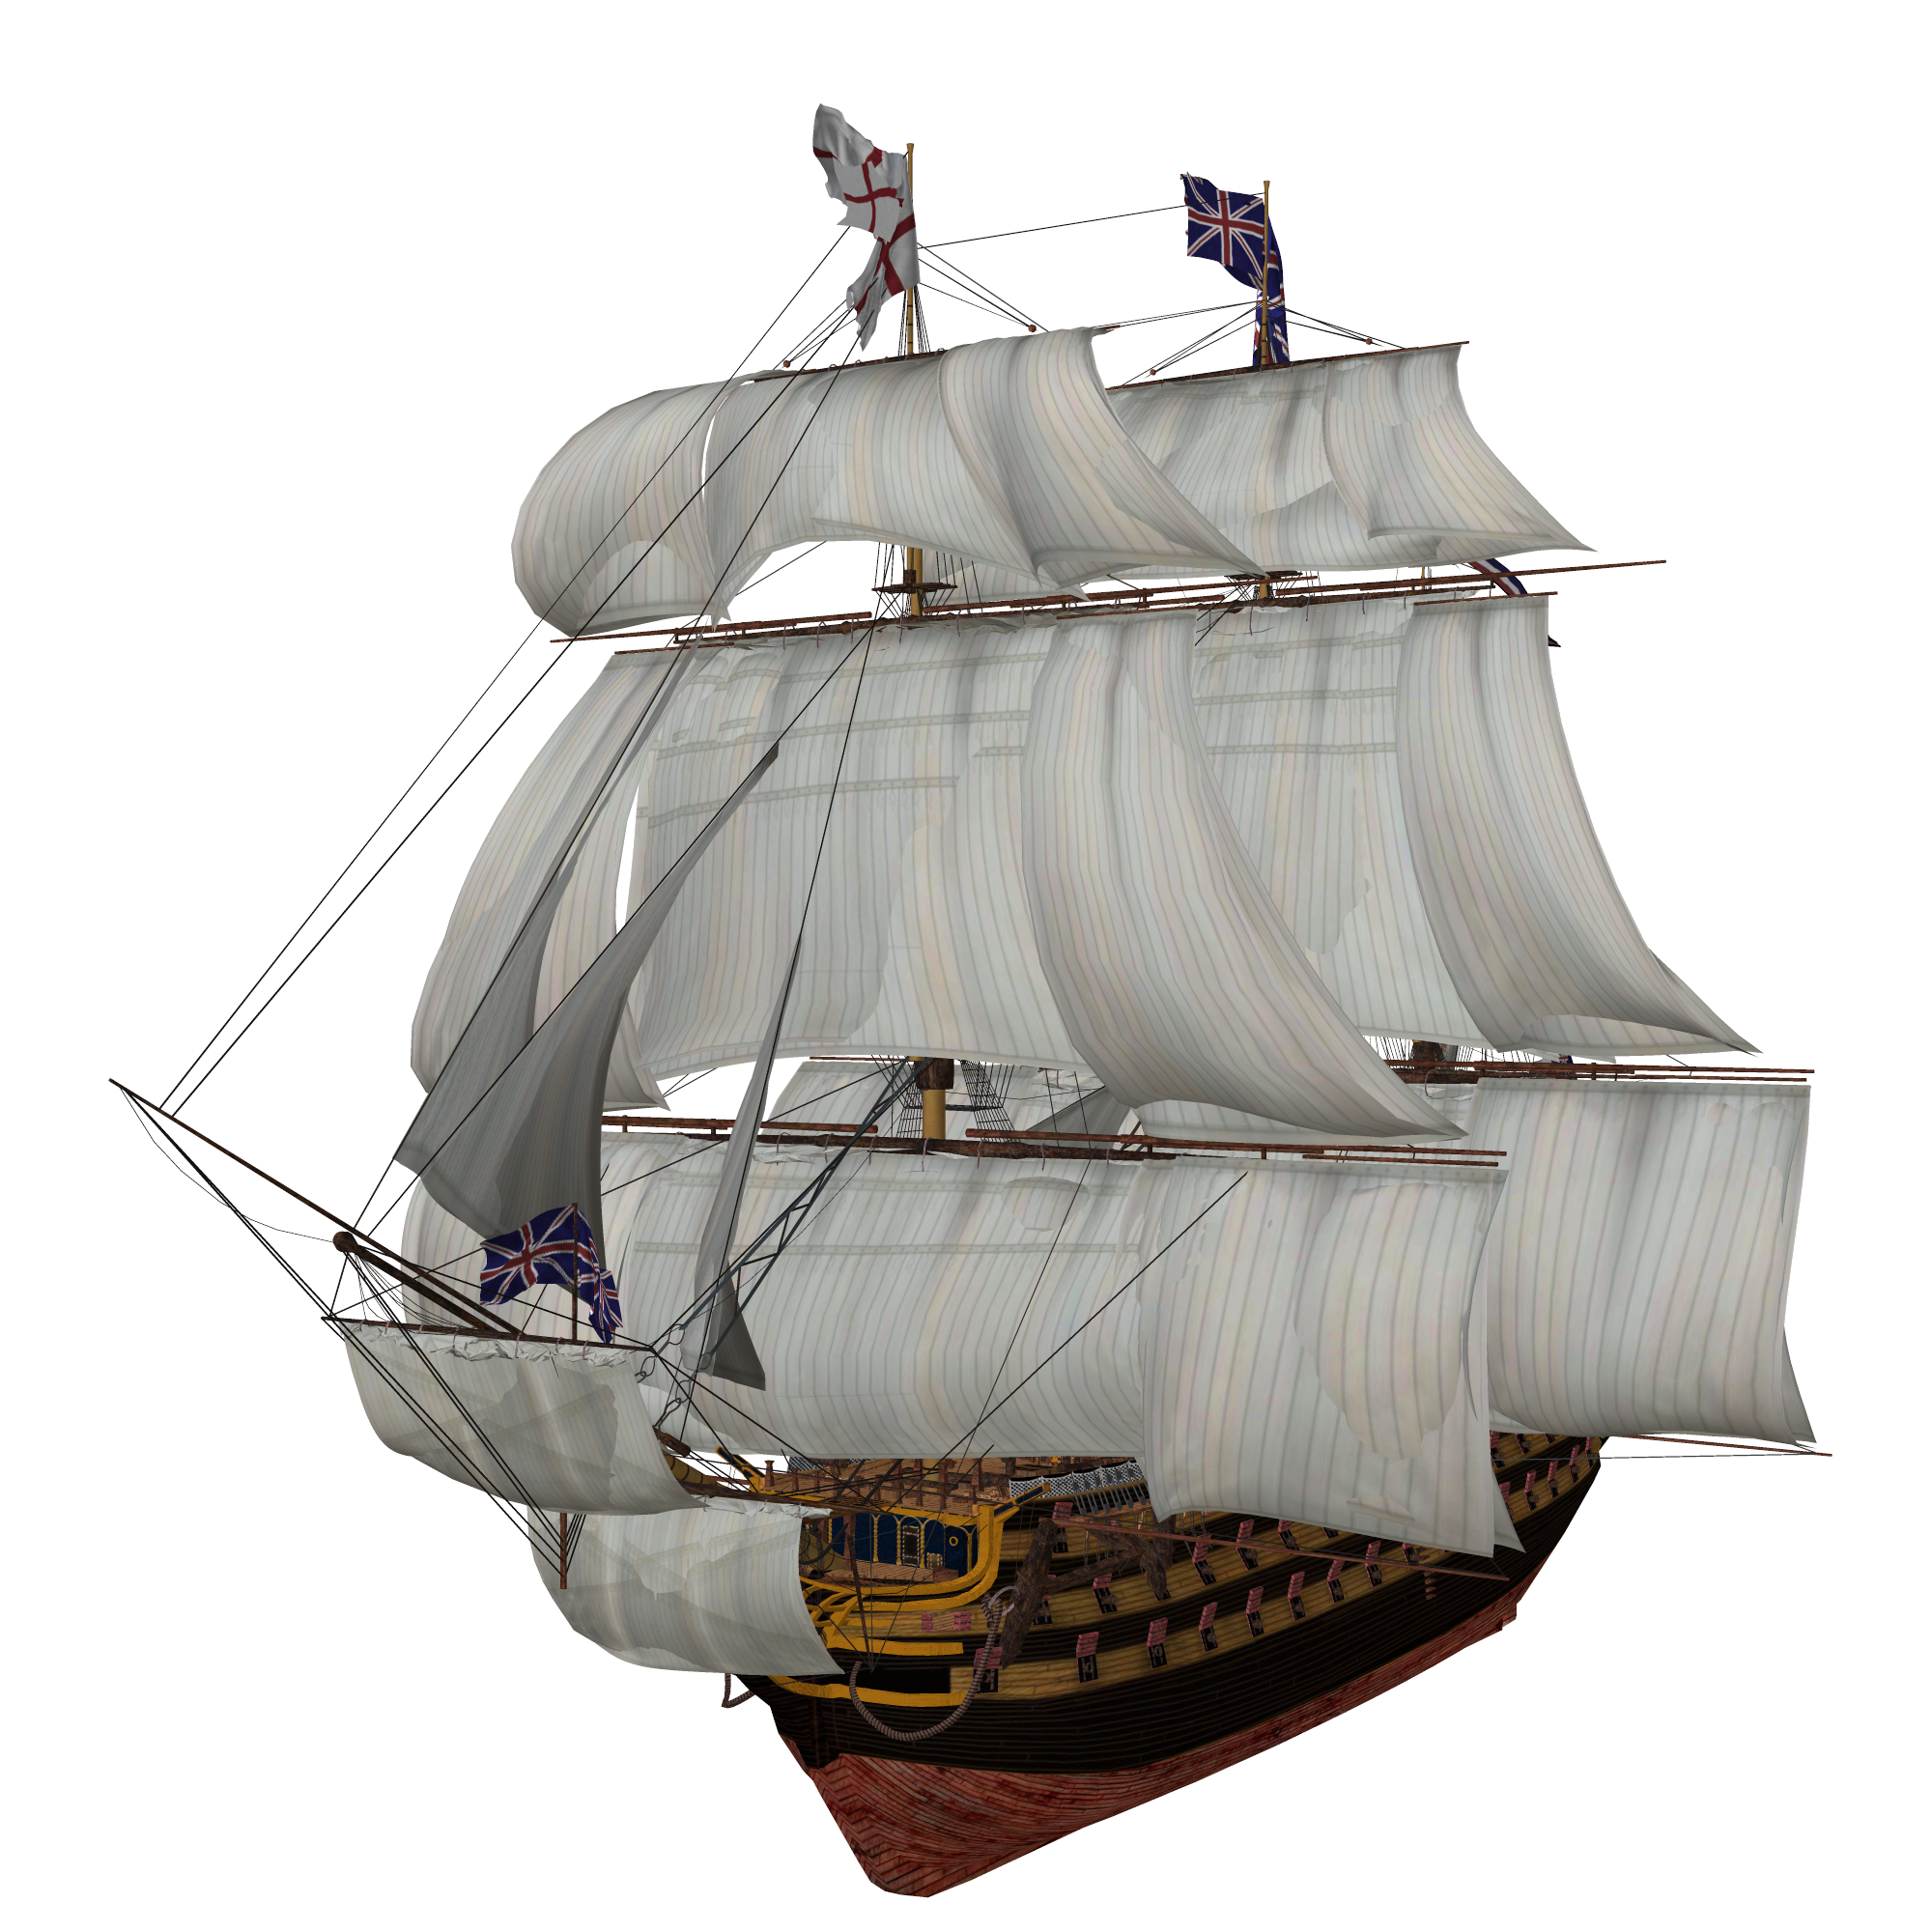 png transparent library Yacht clipart baot. Sailing ship line free